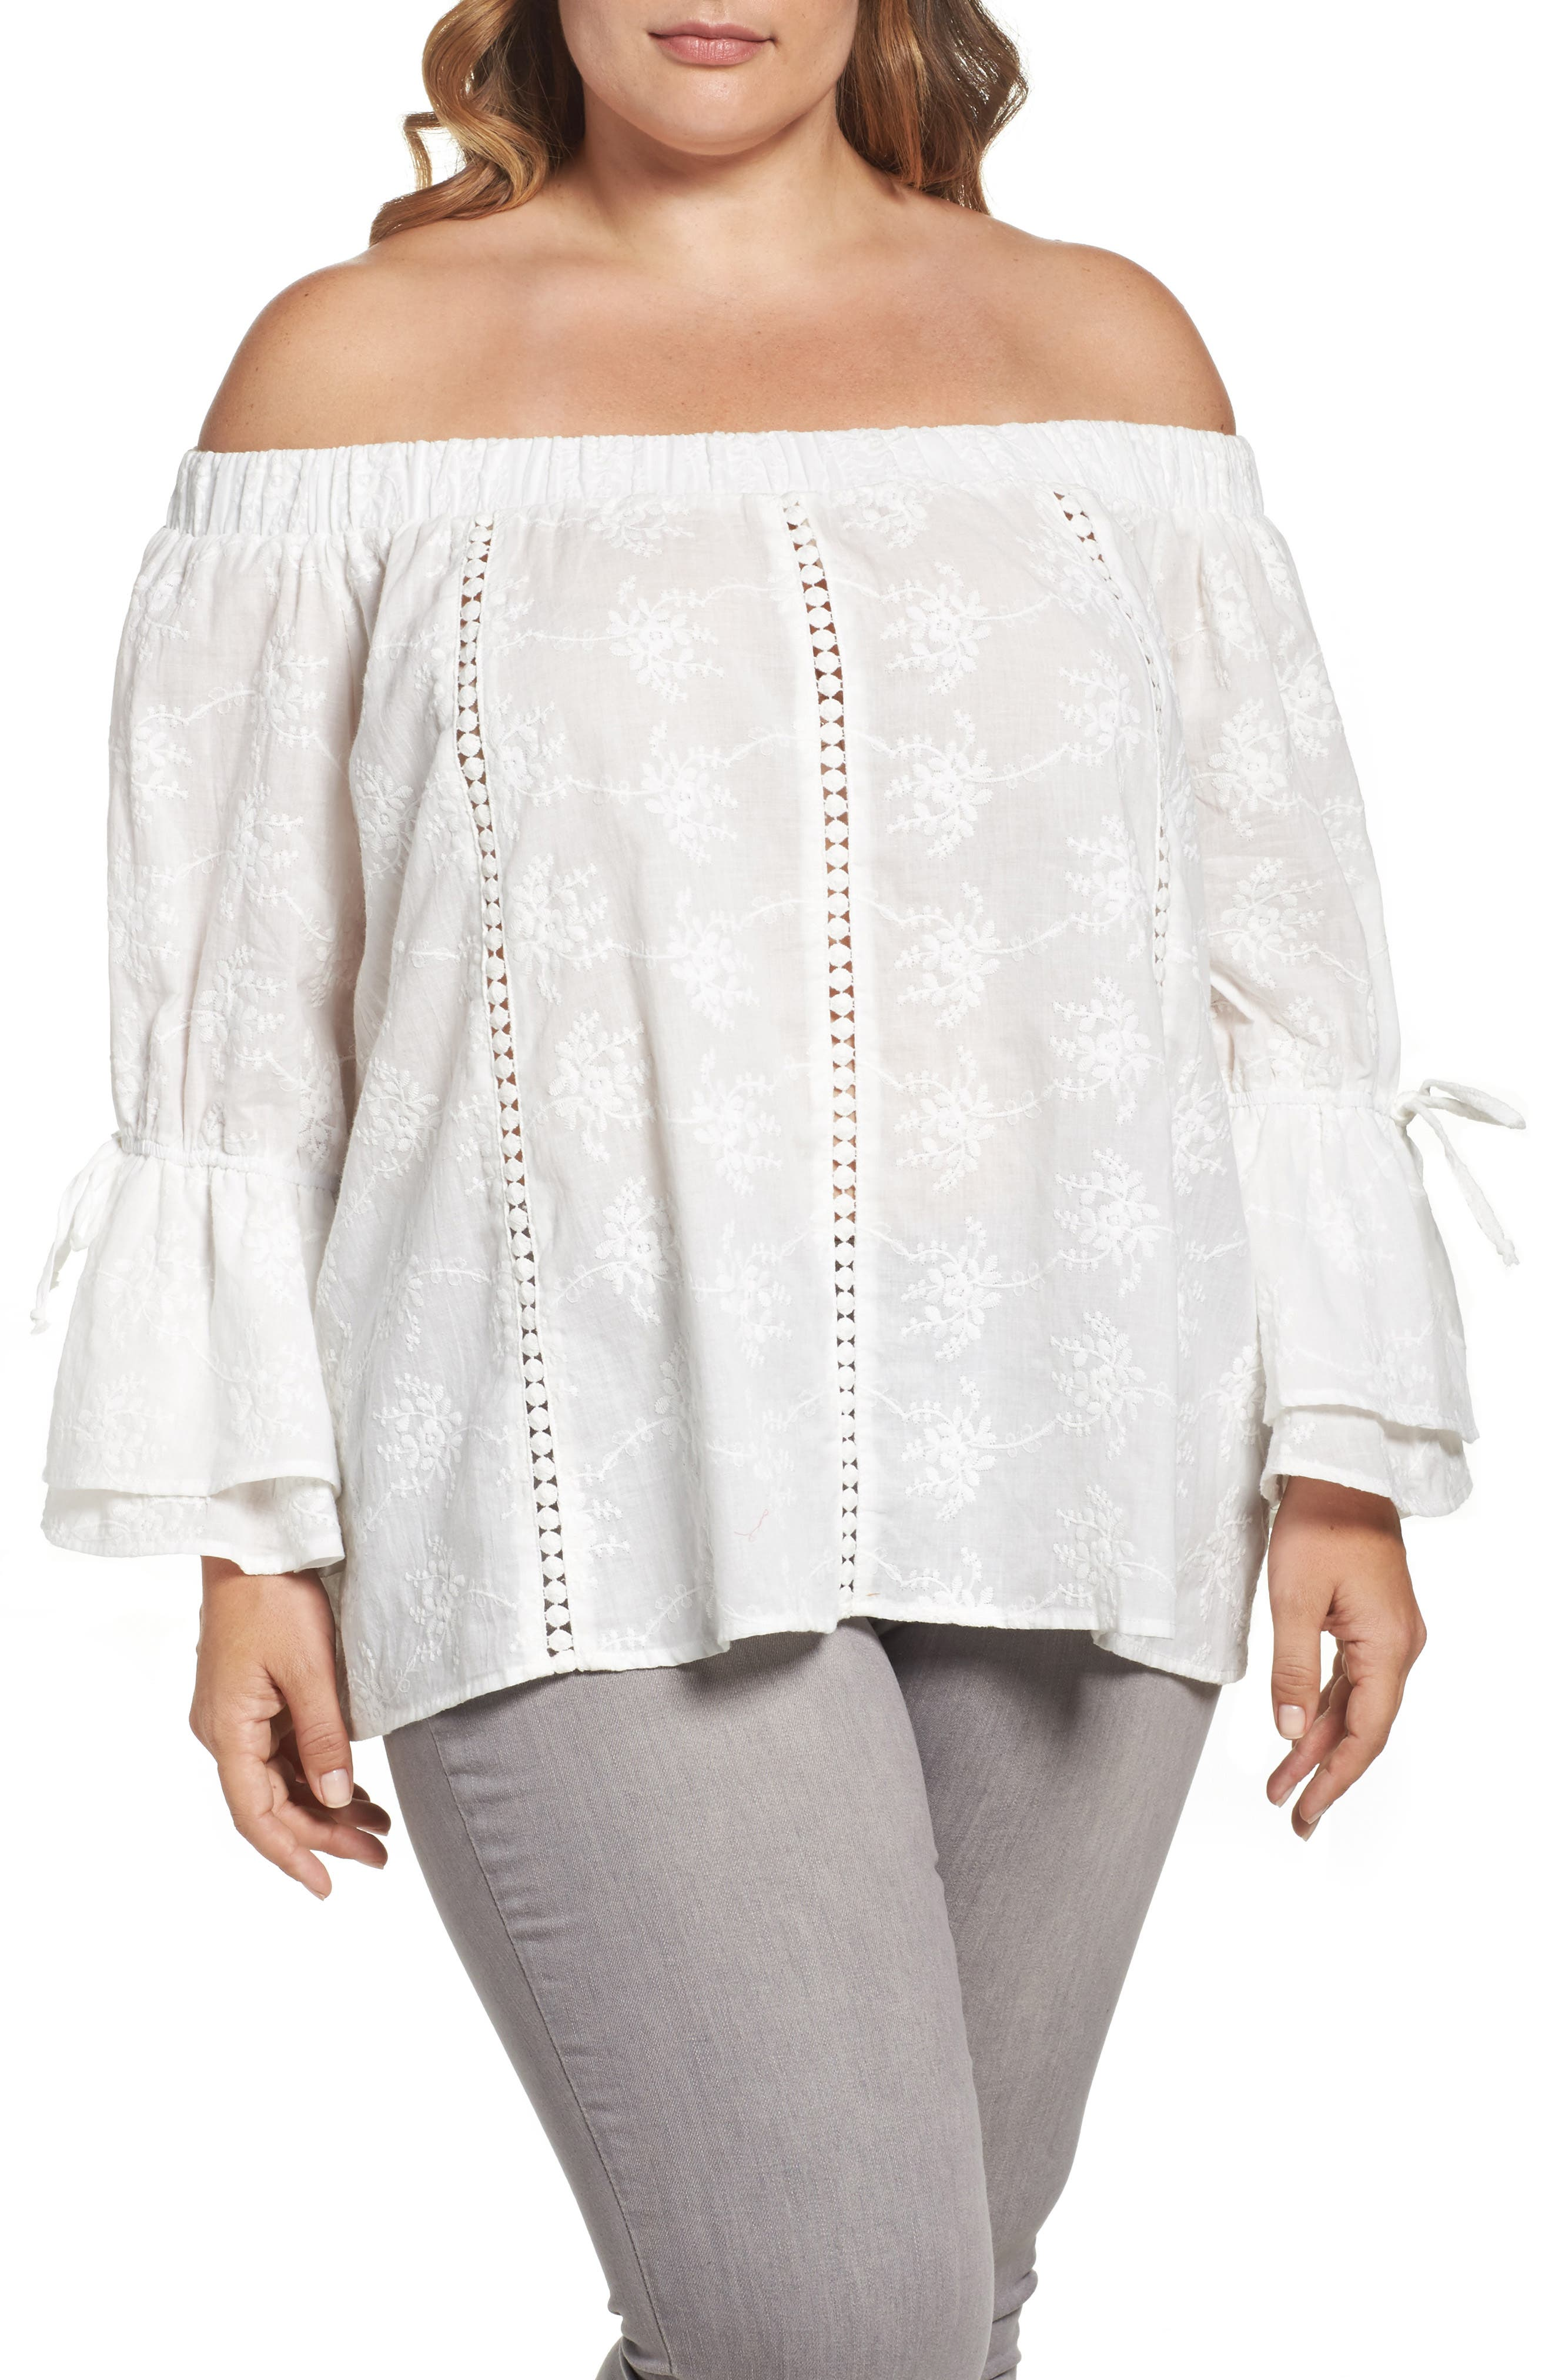 Lumie Embroidered Off the Shoulder Top (Plus Size)